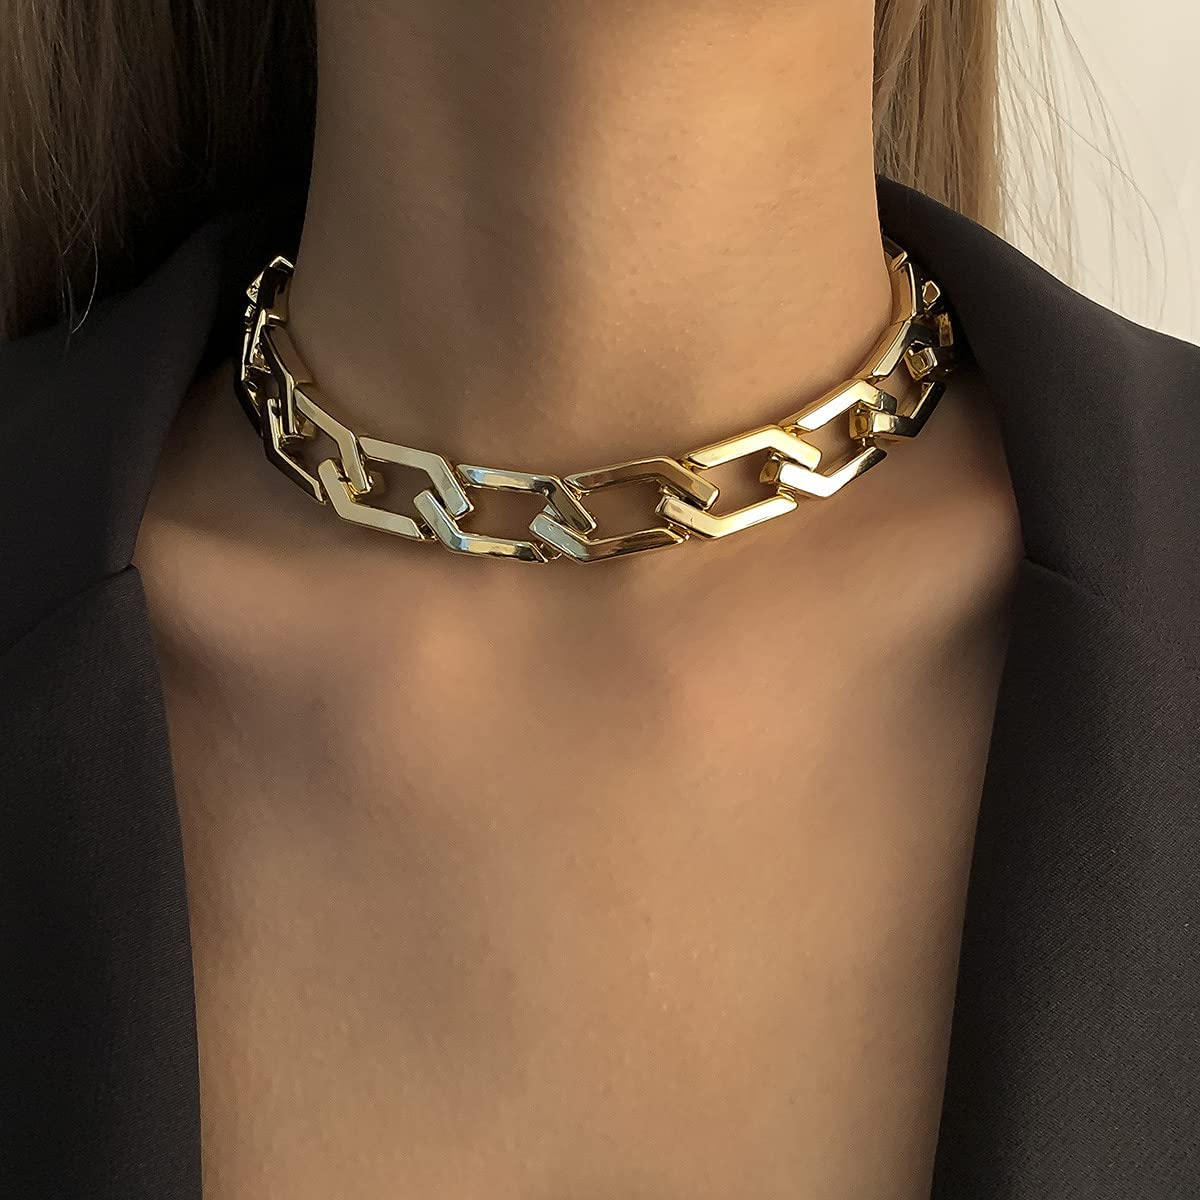 Asphire Punk Link Chain Choker Necklace CCB Chunky Metal Bracelet Hip Hop Geometric Chain Jewelry for Women Teens Girls (Gold, 14'' Necklace)